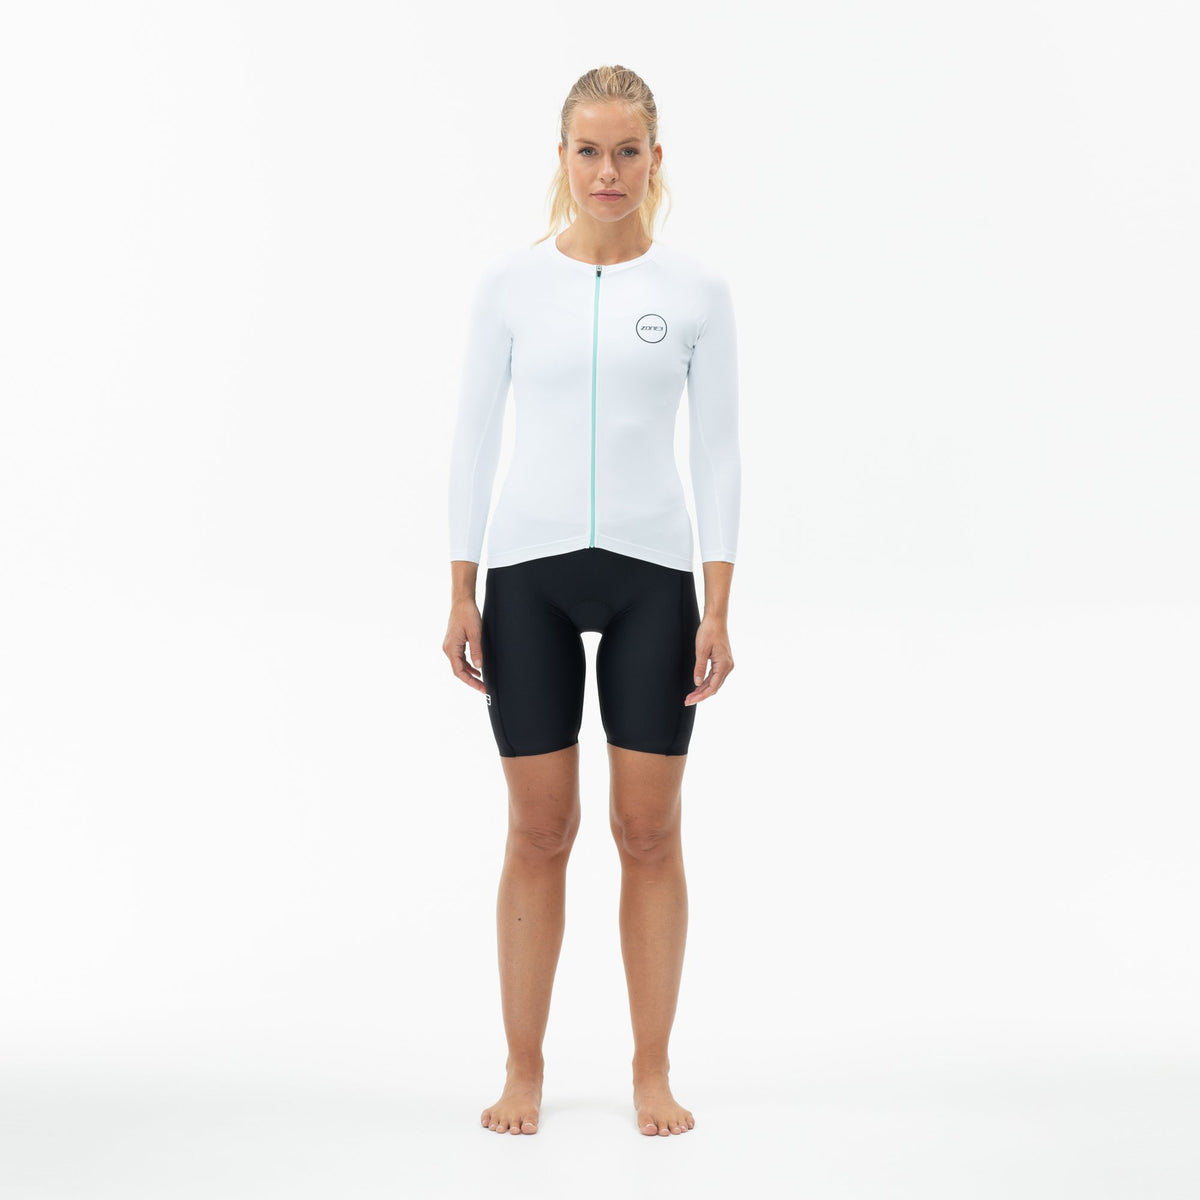 Women's Lava Aero 3/4 Sleeve Warmth Top